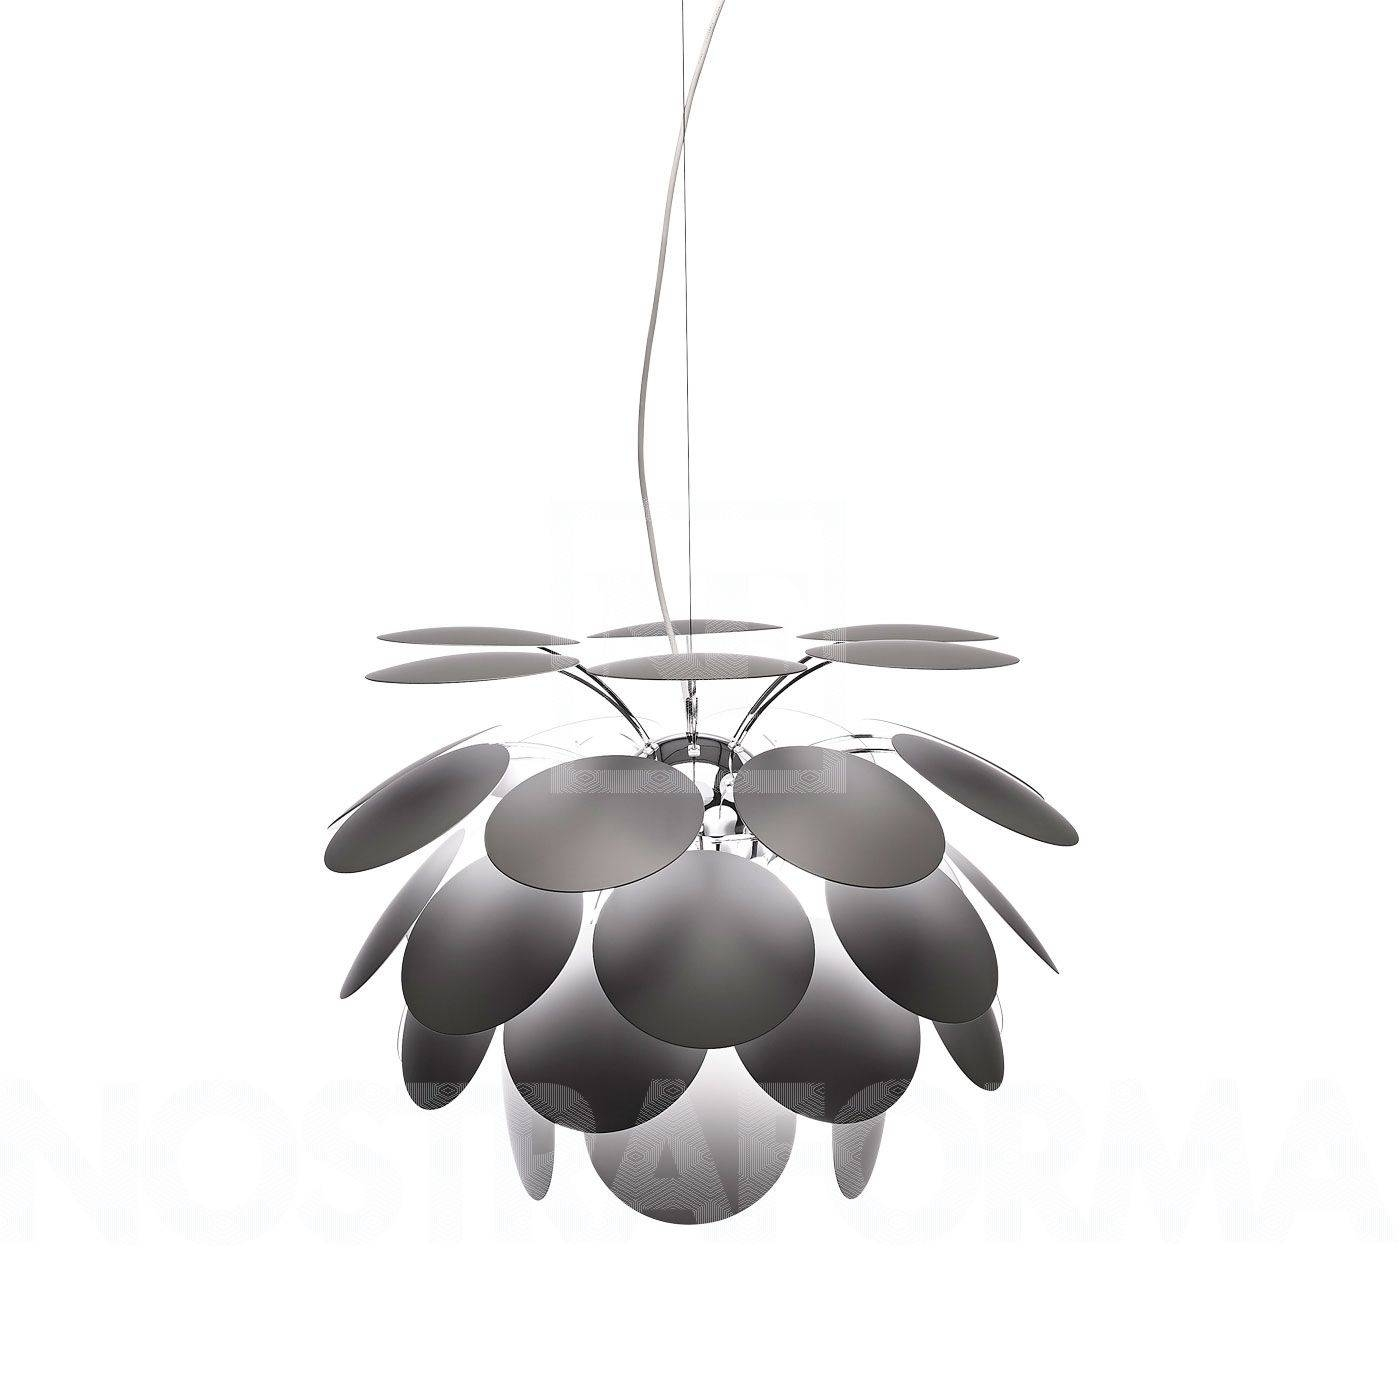 Marset Discoco 68 Pendant Lamp, Medium » Modern And Contemporary with regard to Discoco Pendant Lights (Image 13 of 15)